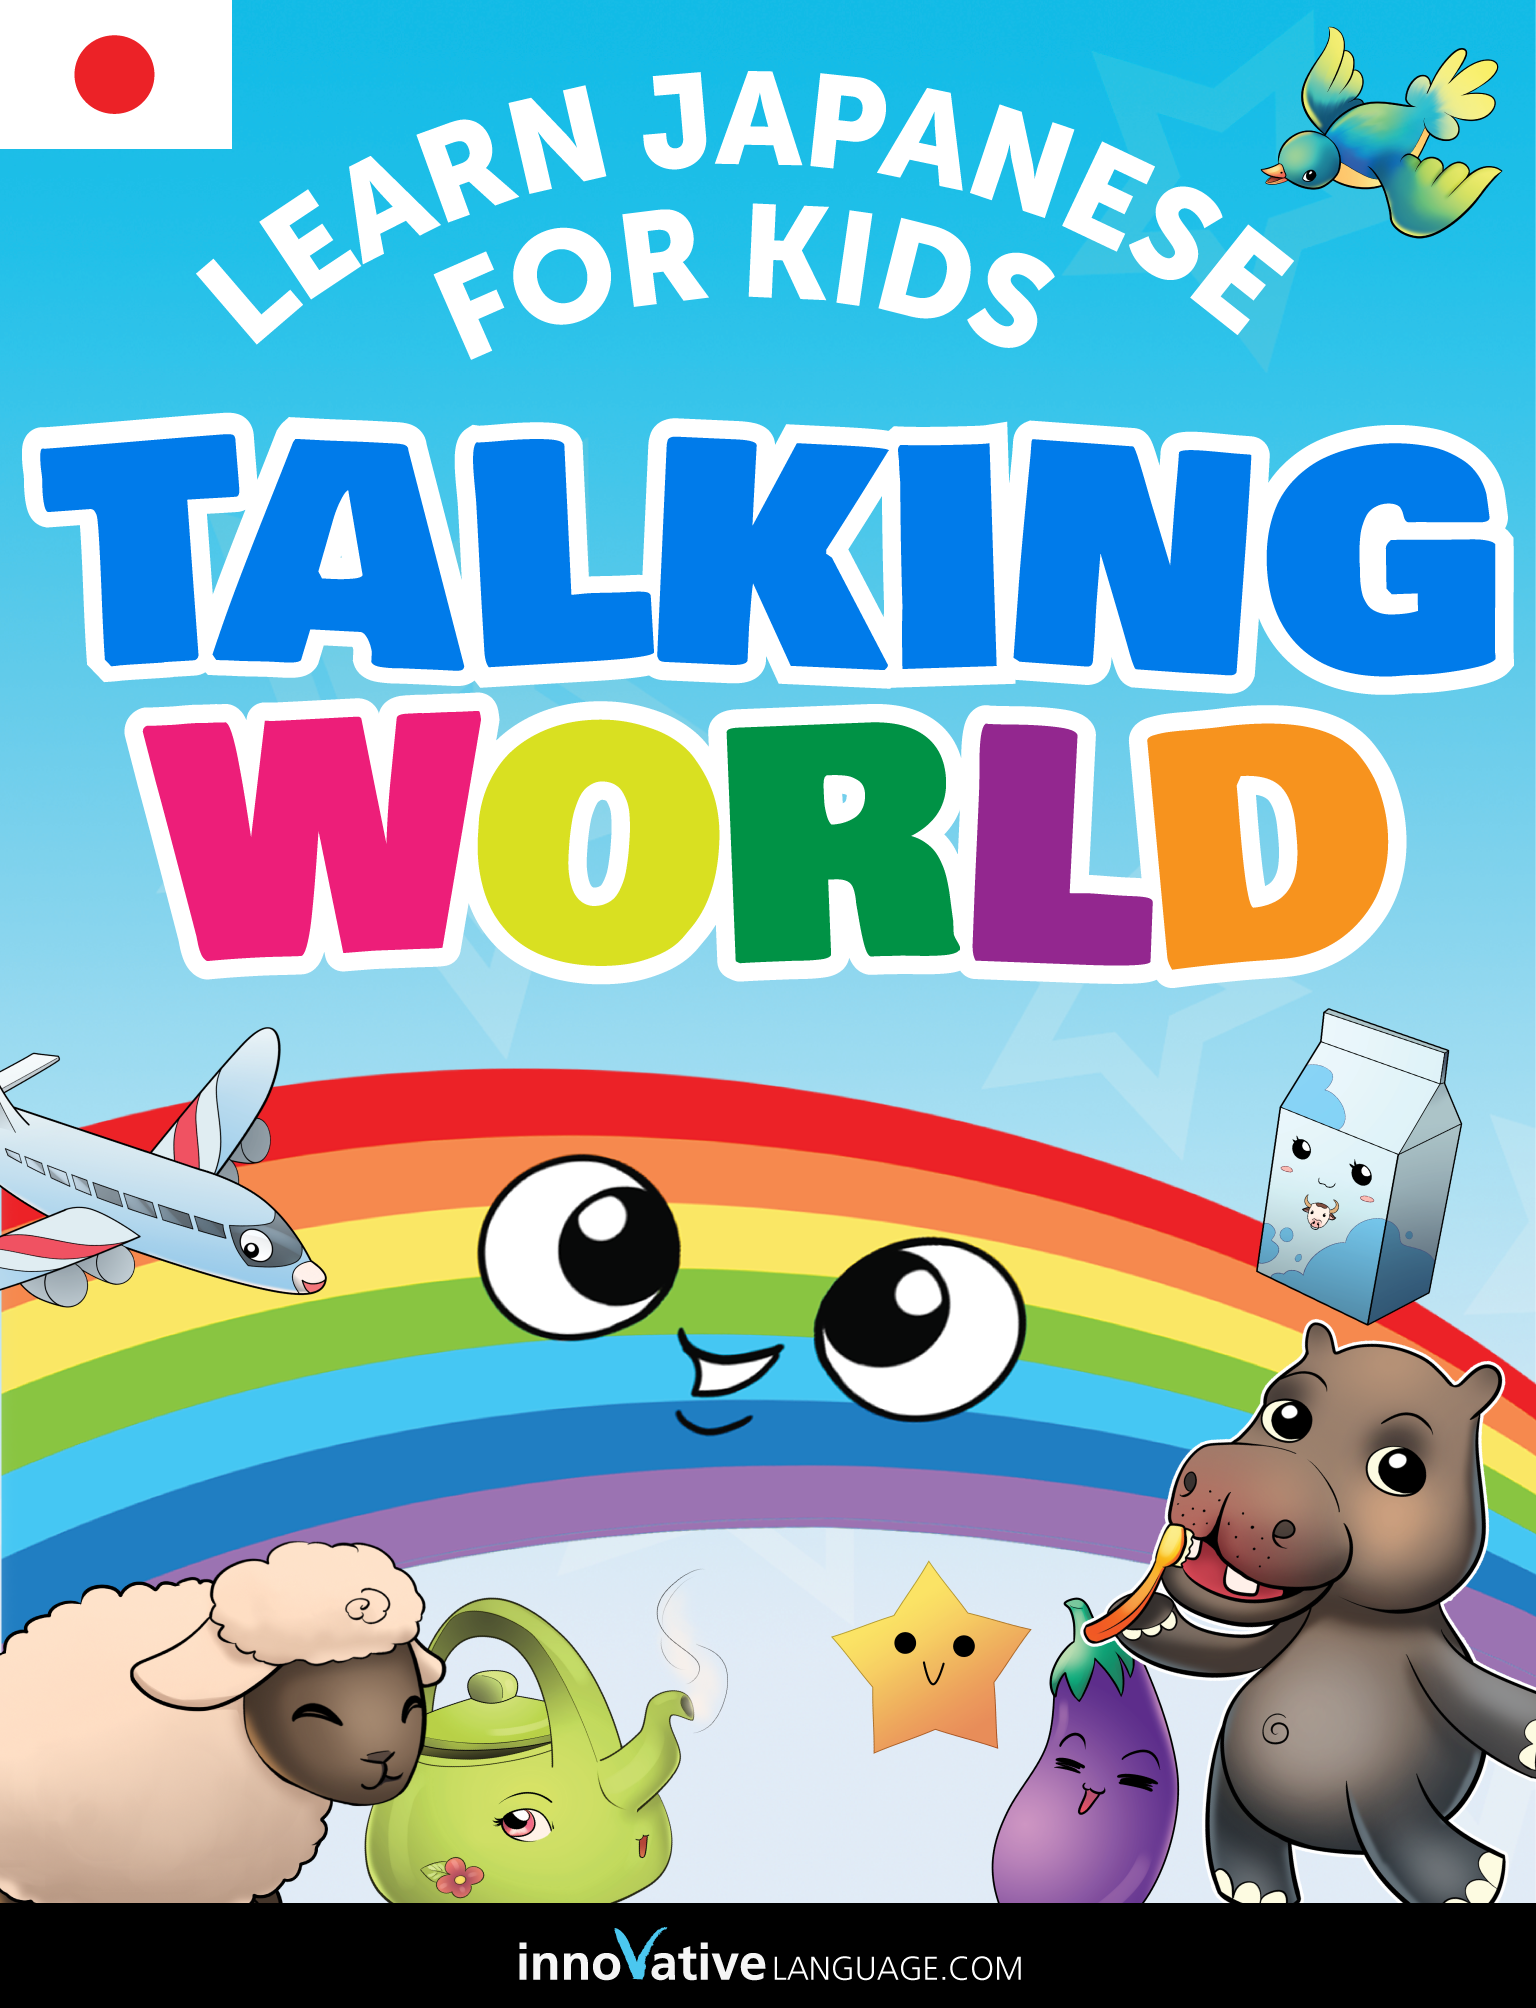 New iBook! Learn Japanese for Kids: Talking World for the iPad